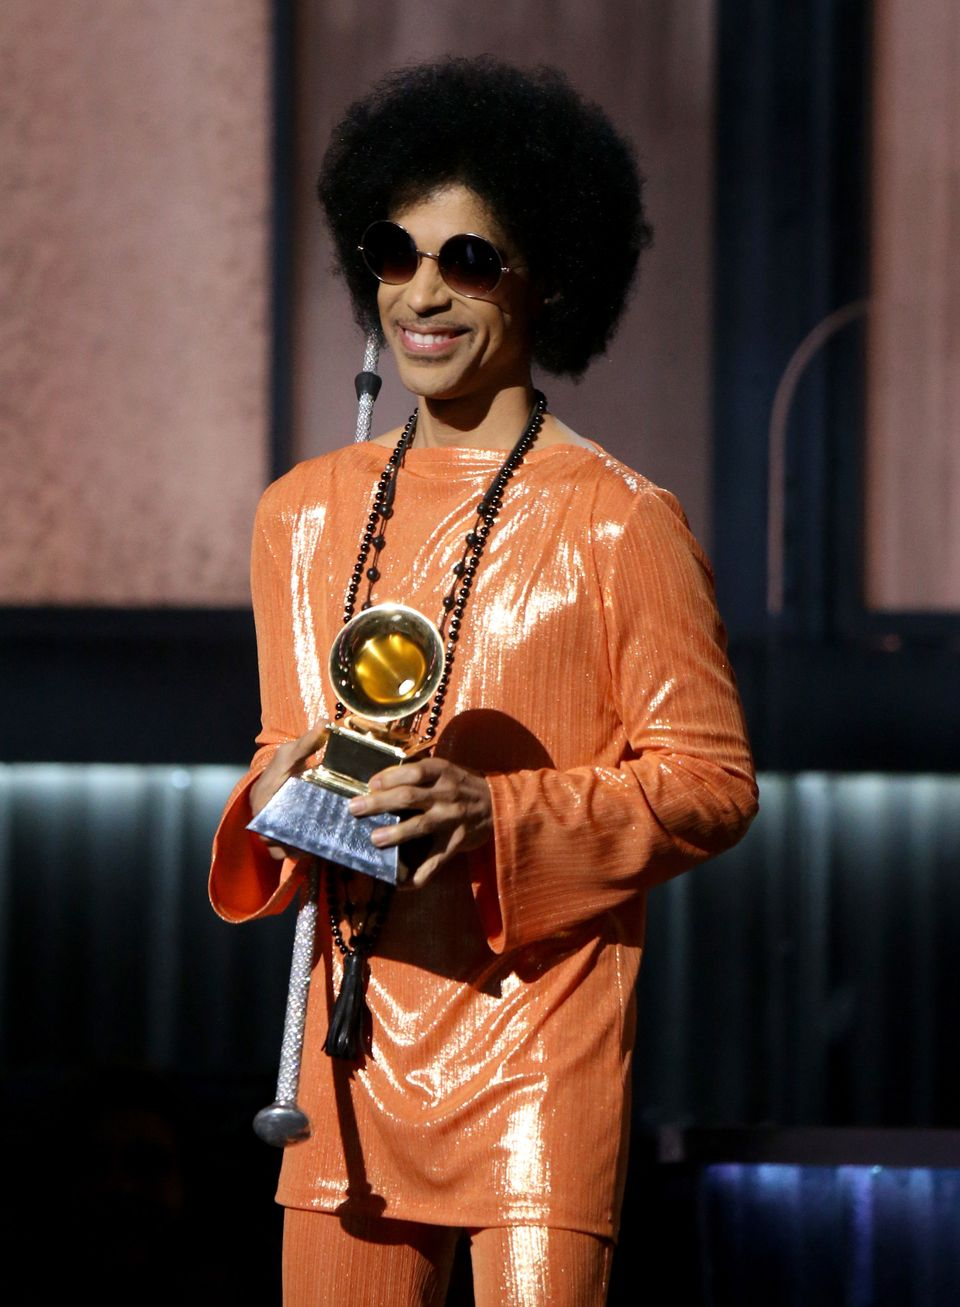 LOS ANGELES, CA - FEBRUARY 08:  Singer/songwriter Prince speaks onstage during The 57th Annual GRAMMY Awards at STAPLES Cente